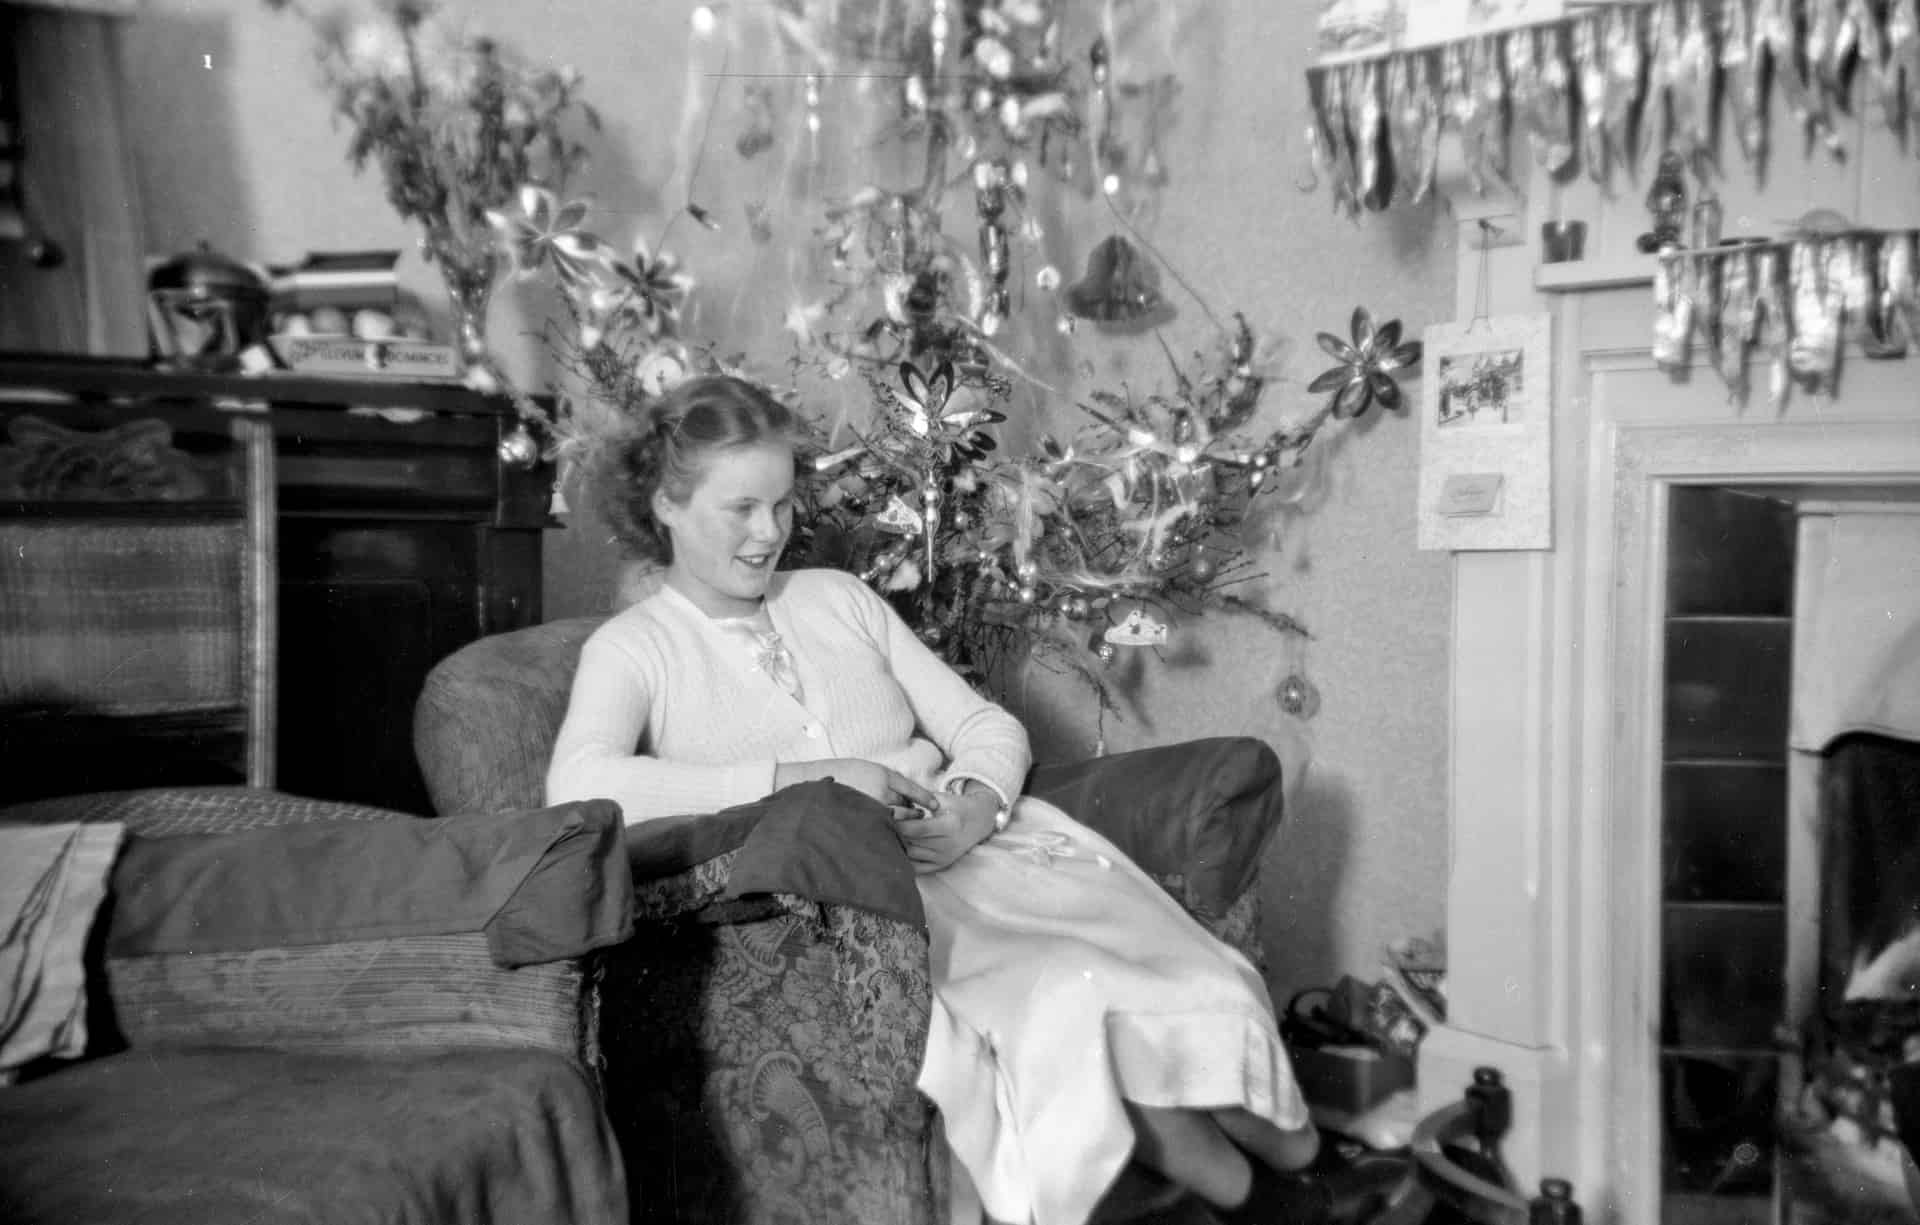 This is my sister at Christmas. You can see the austerity of the Christmas tree!There's the old radio set, because there was no television then, just a radio. Most of the decorations on the tree are home made.